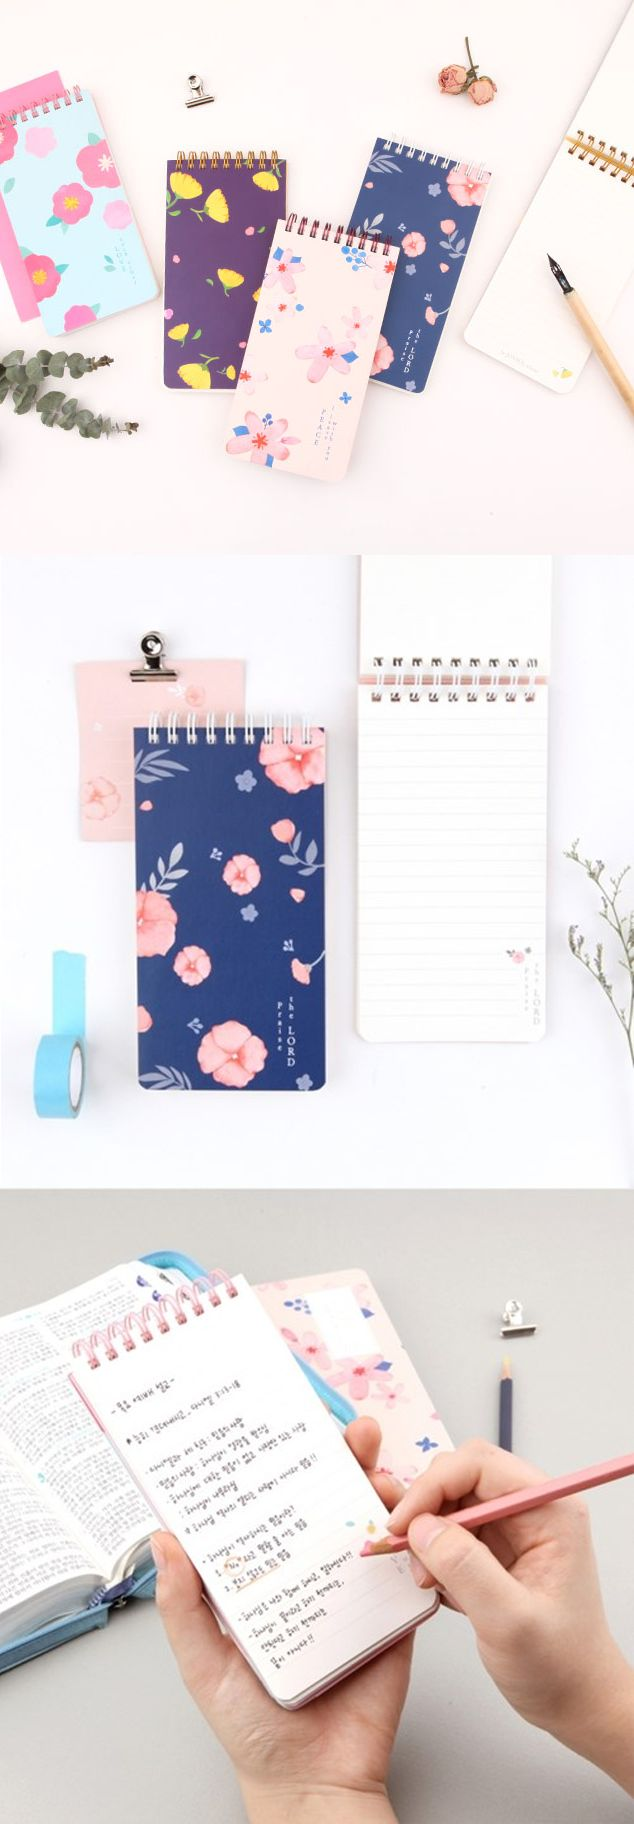 The flowery cover design and bible verse make this notebook graceful. The Flower Handy Notebook has a  perfect size and elegant design to carry with at all time!